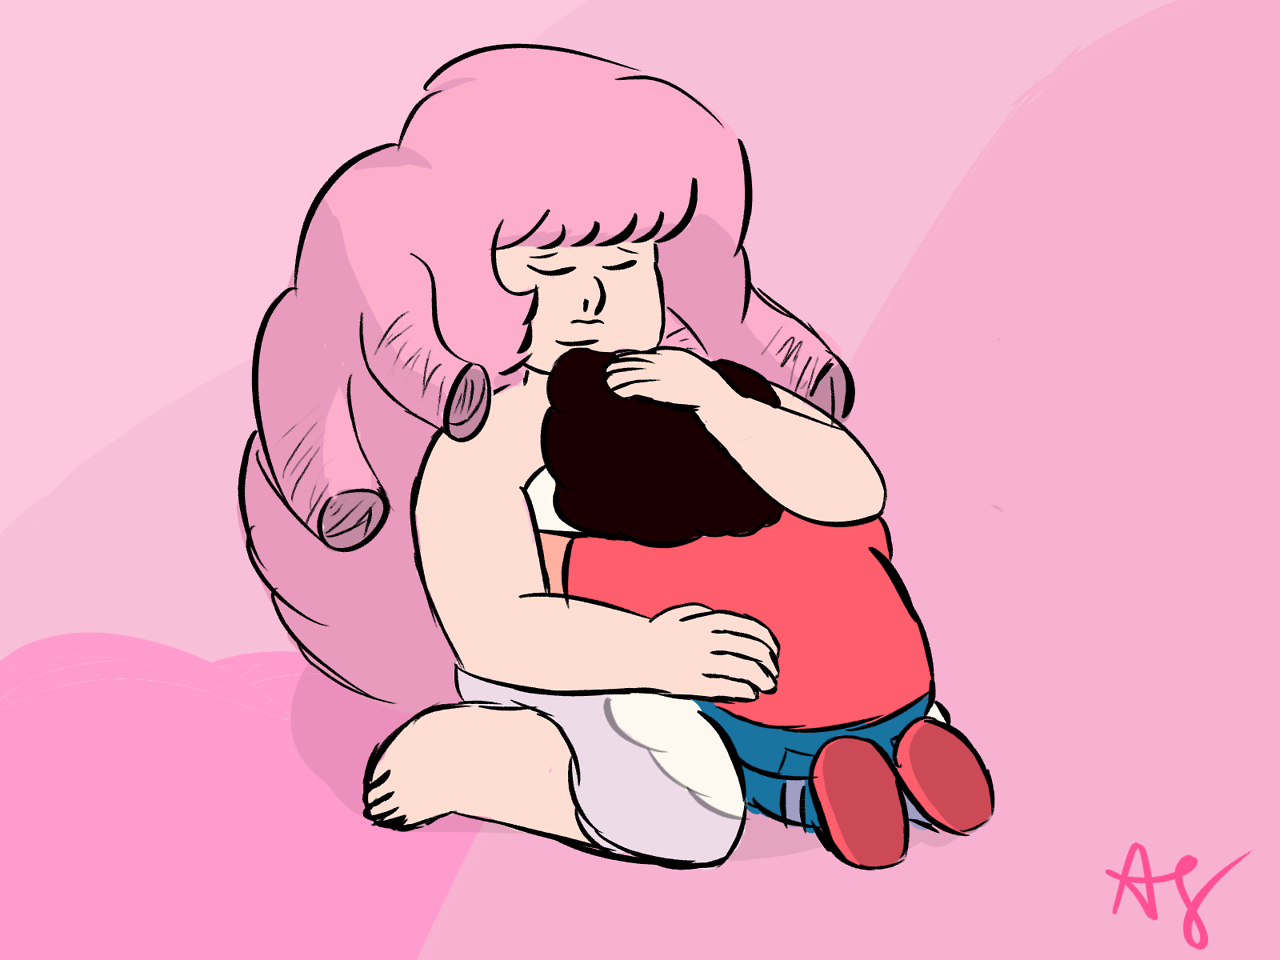 I kinda hope Steven goes into the room whenever he needs a cry and good hug from someone other than the gems